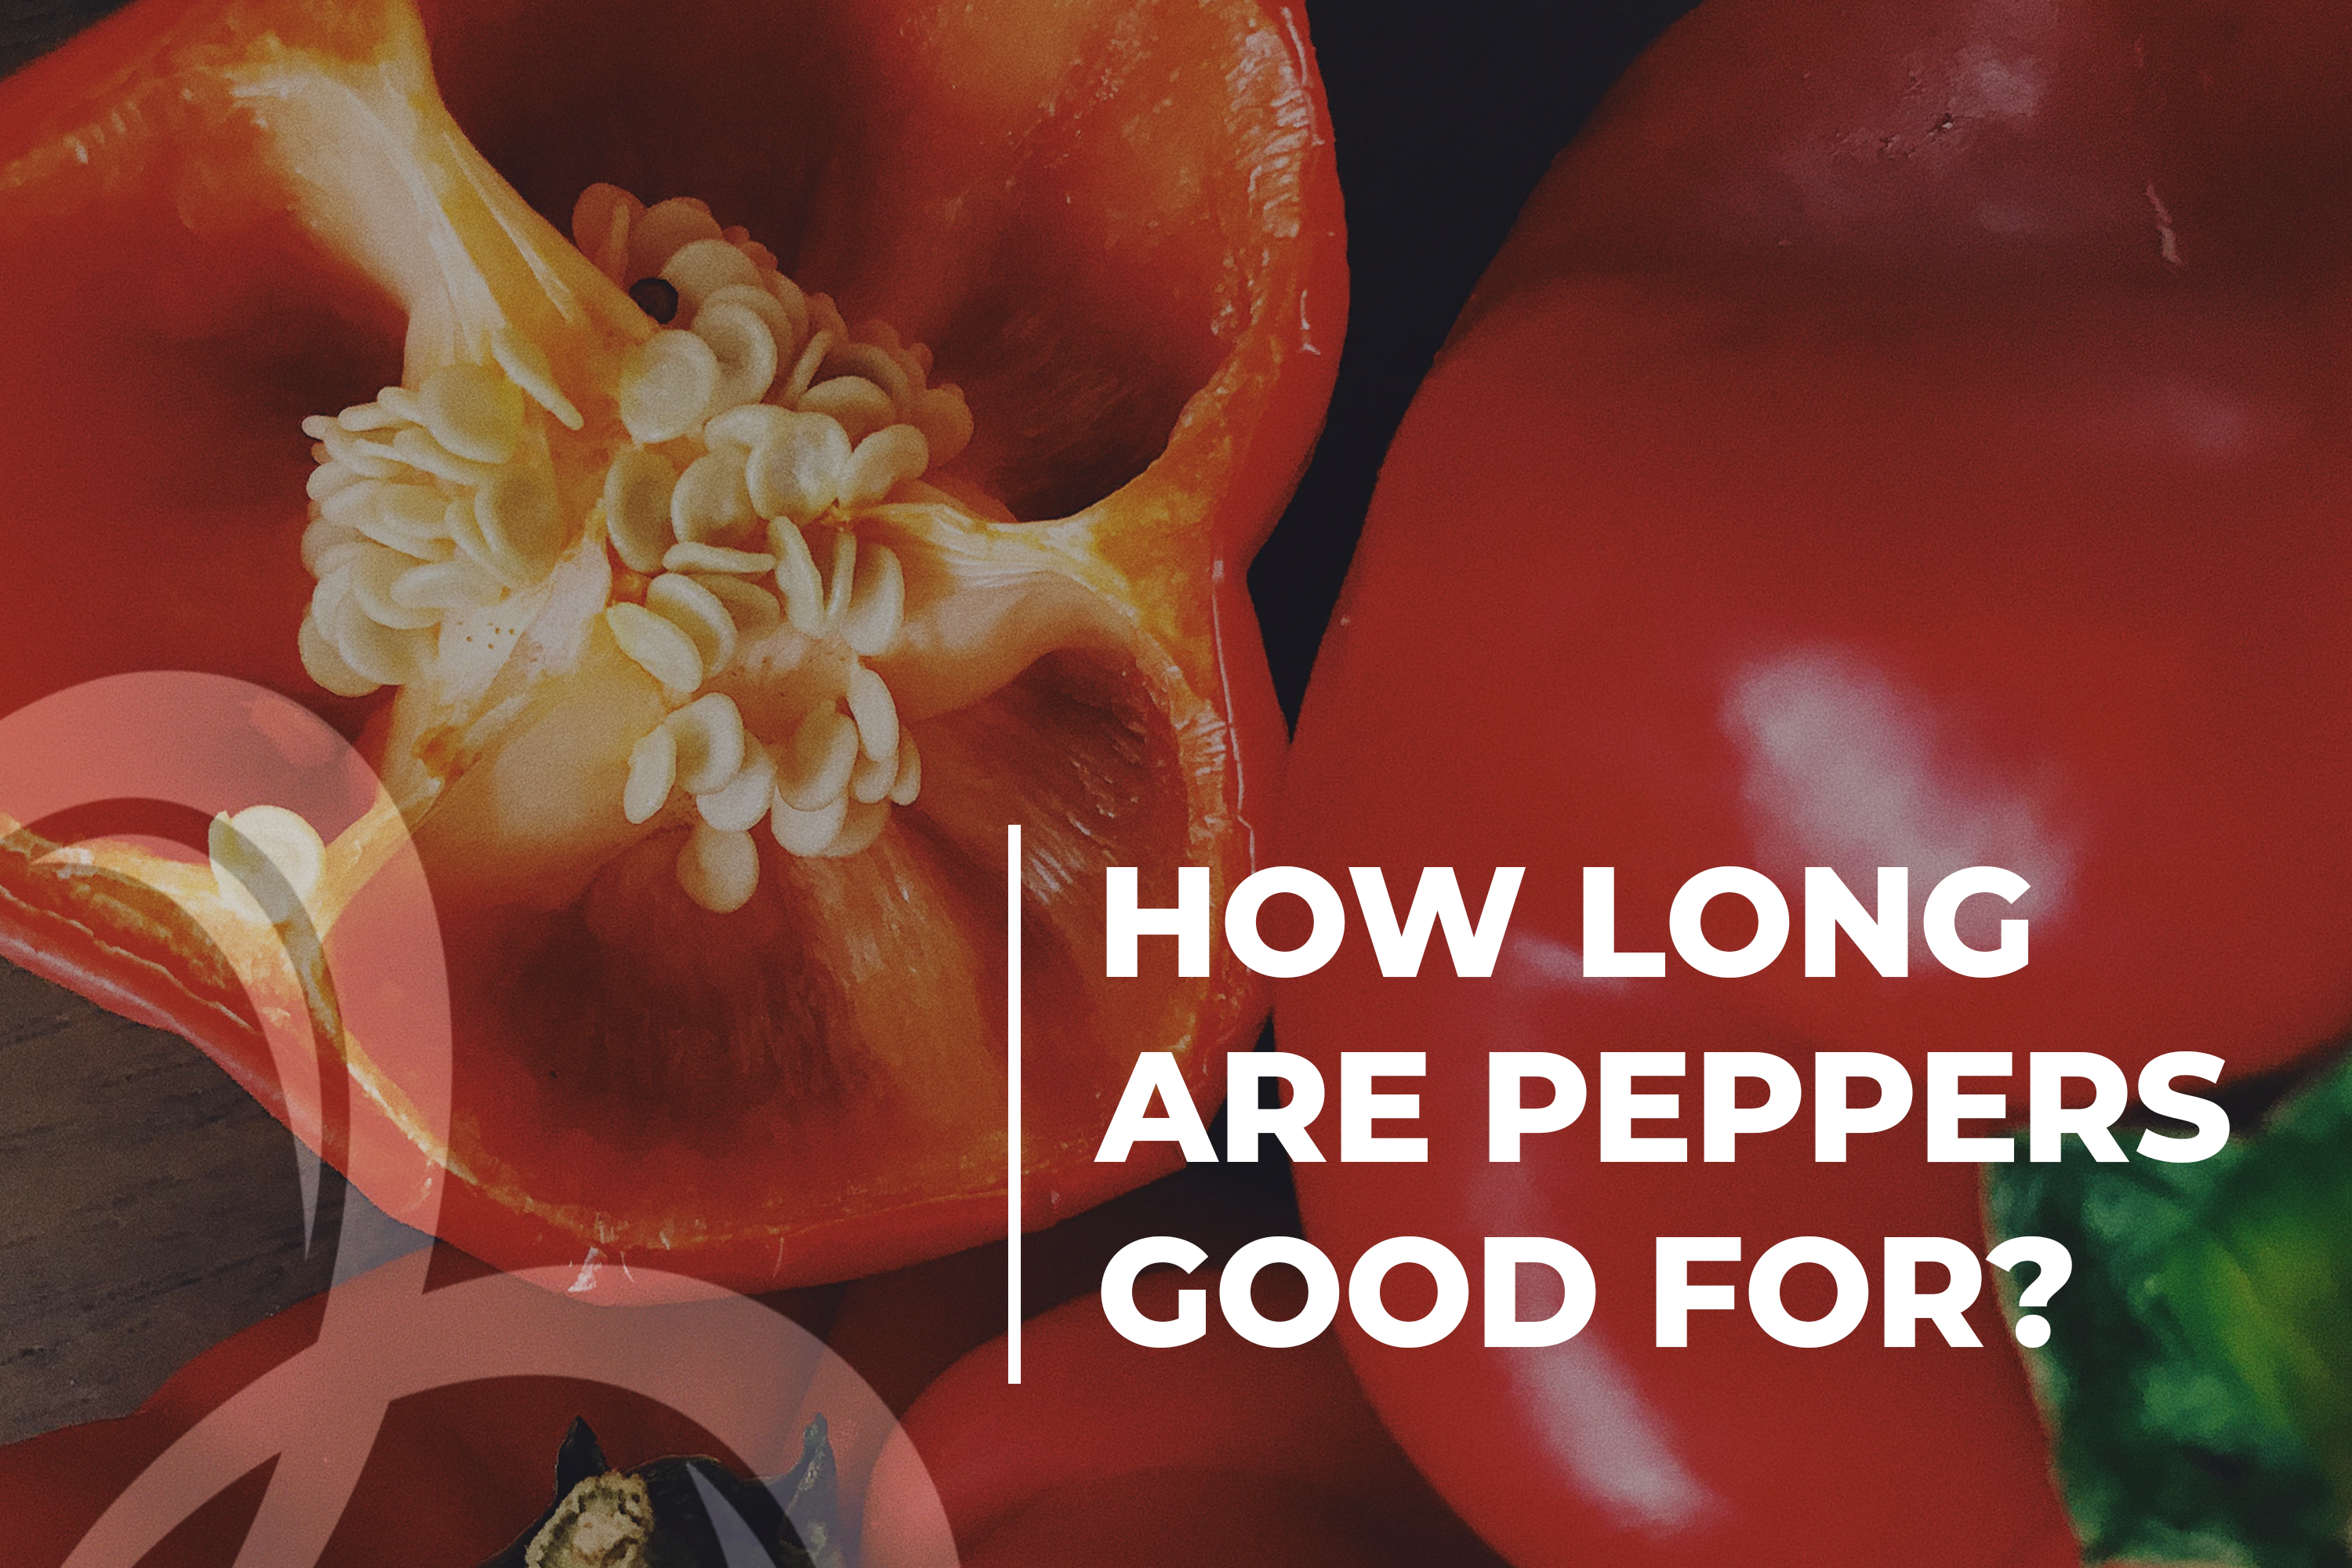 How long are peppers good for